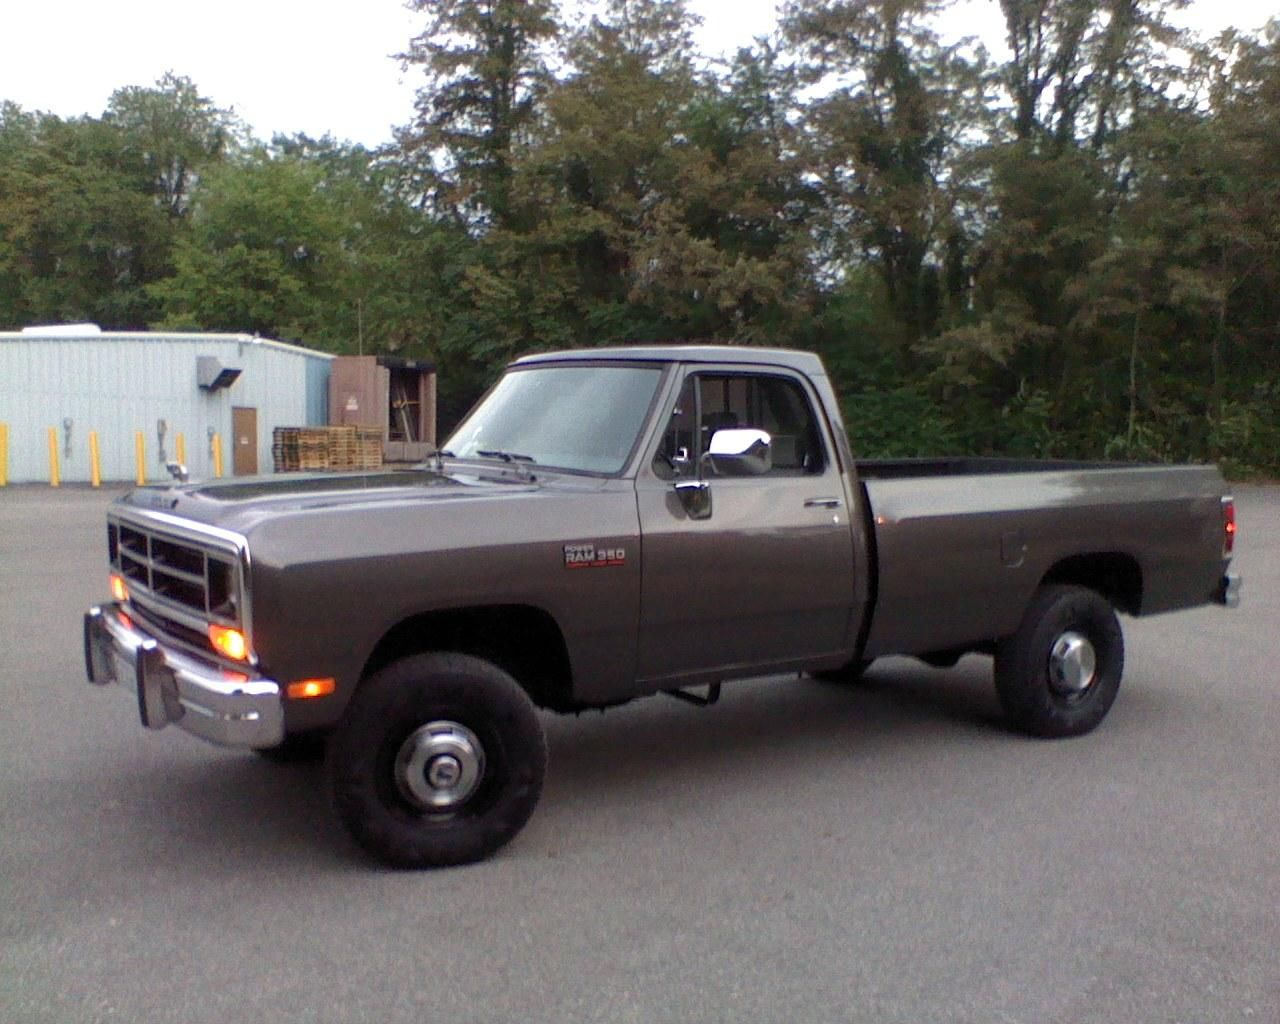 Com one owner 1993 dodge ram 250 le extended cab 4x4 long bed cummins diesel truck for sale in locust grove va e m auto sales emau pinteres